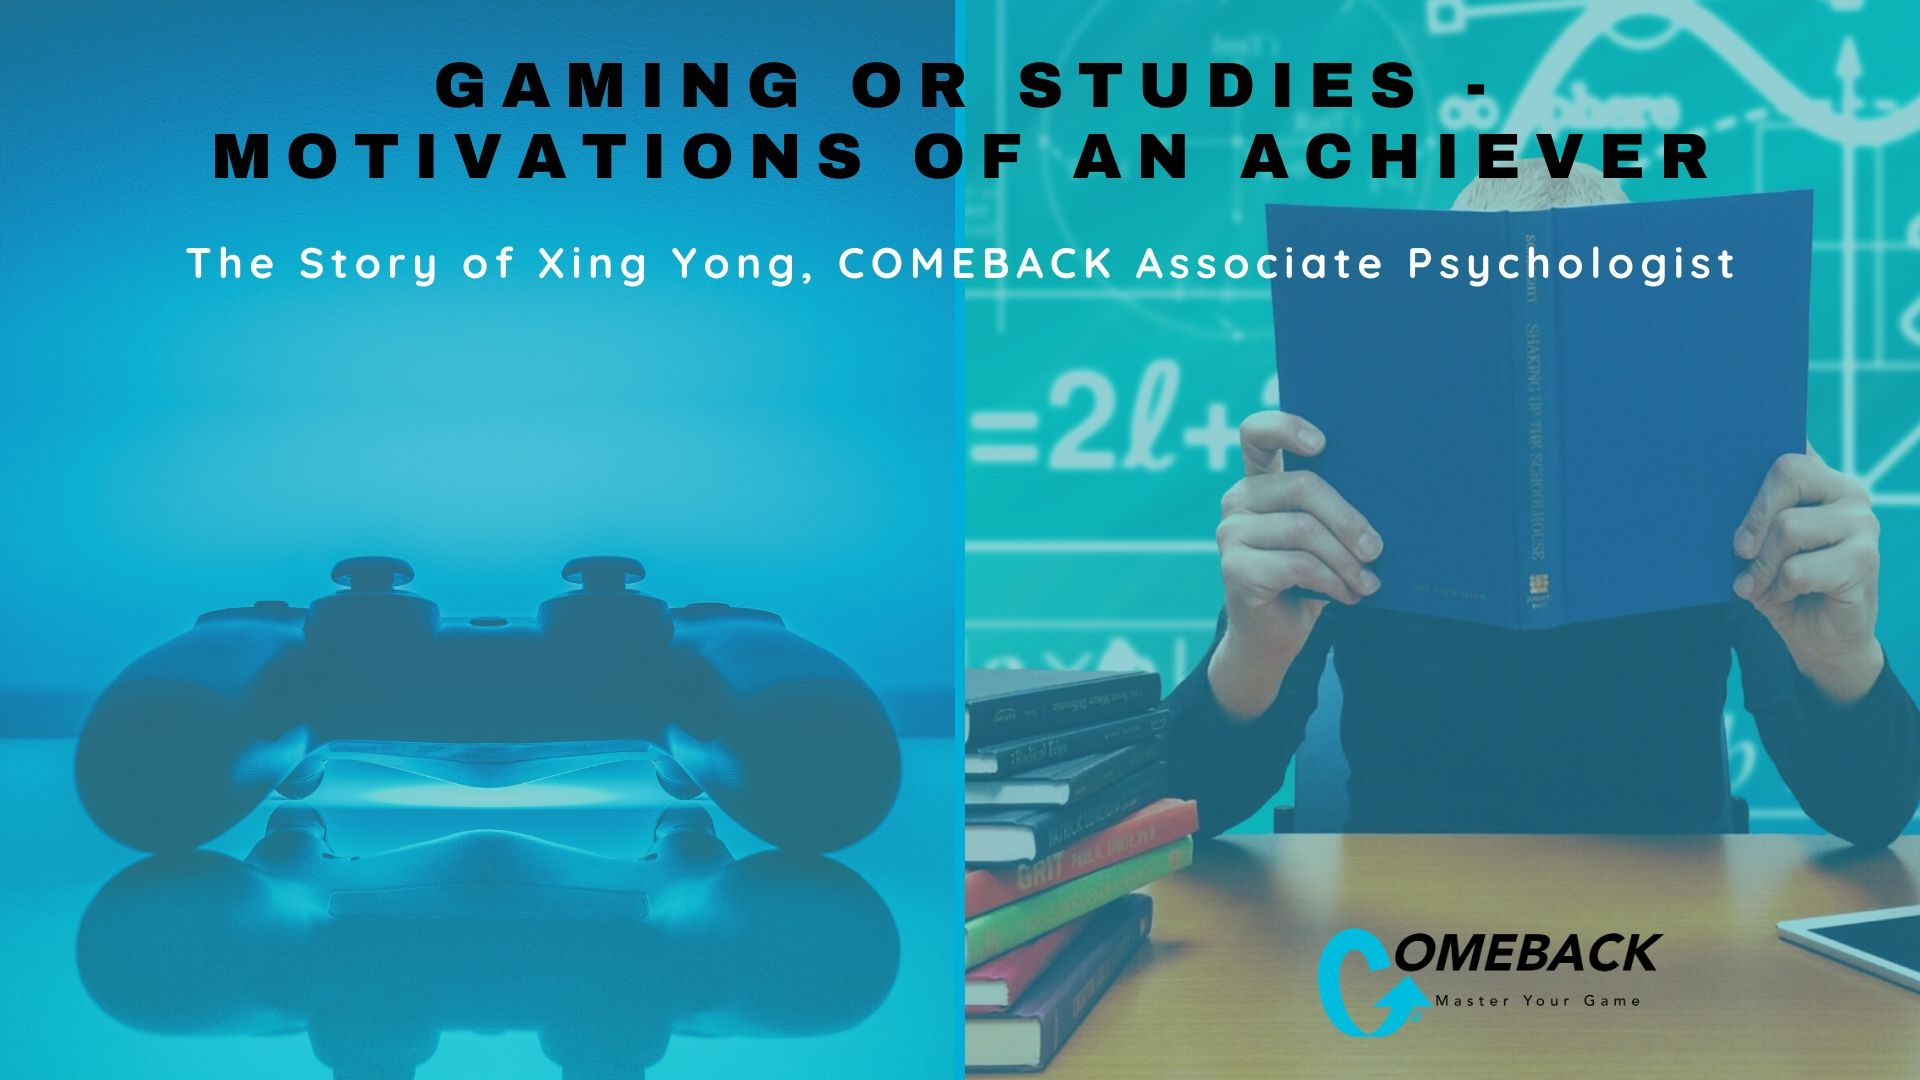 Gaming OR Studies - Motivations of an Achiever